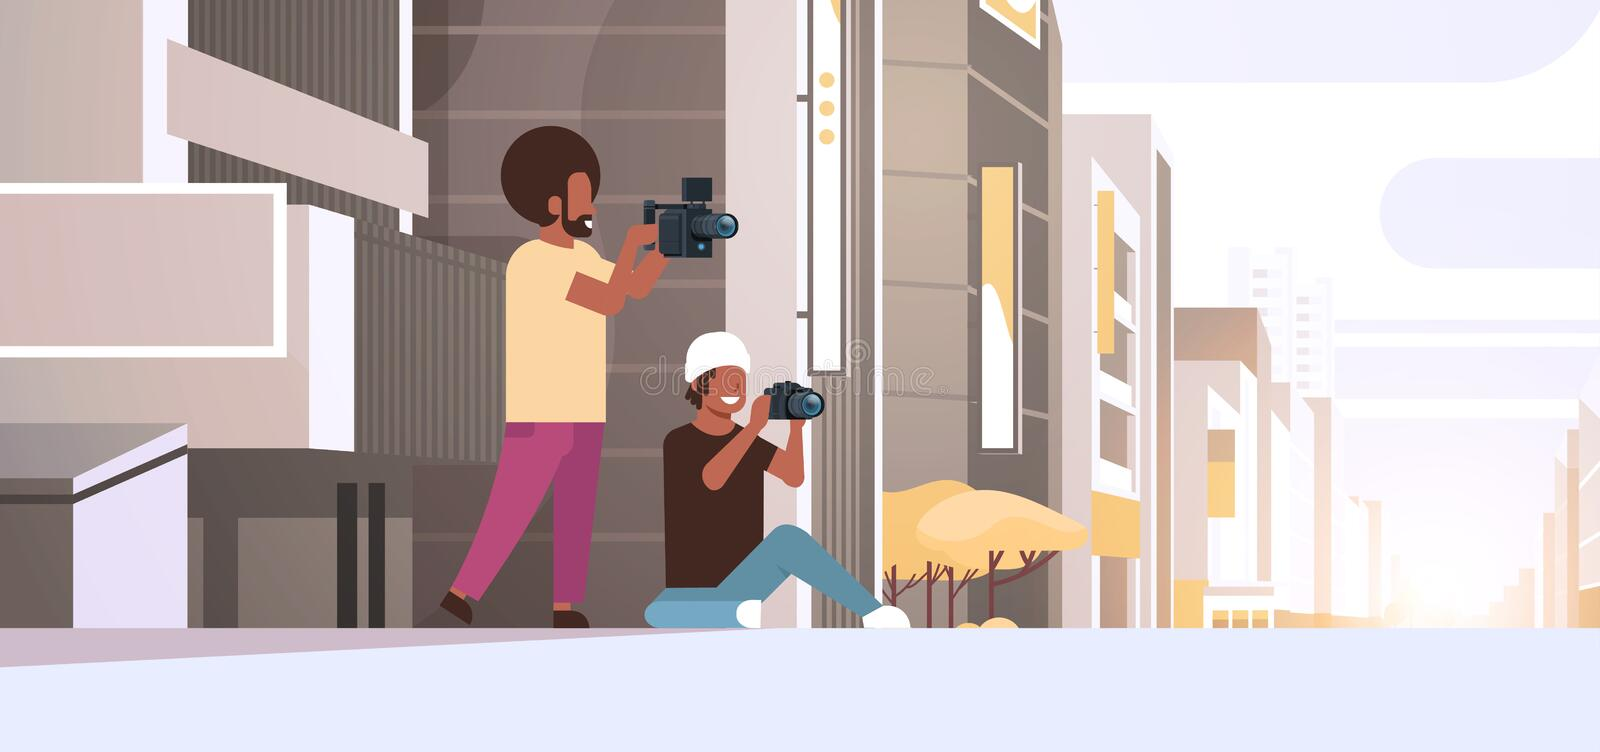 Photographer and cameraman using cameras shooting video taking pictures working together over modern city buildings. Exterior cityscape background horizontal stock illustration